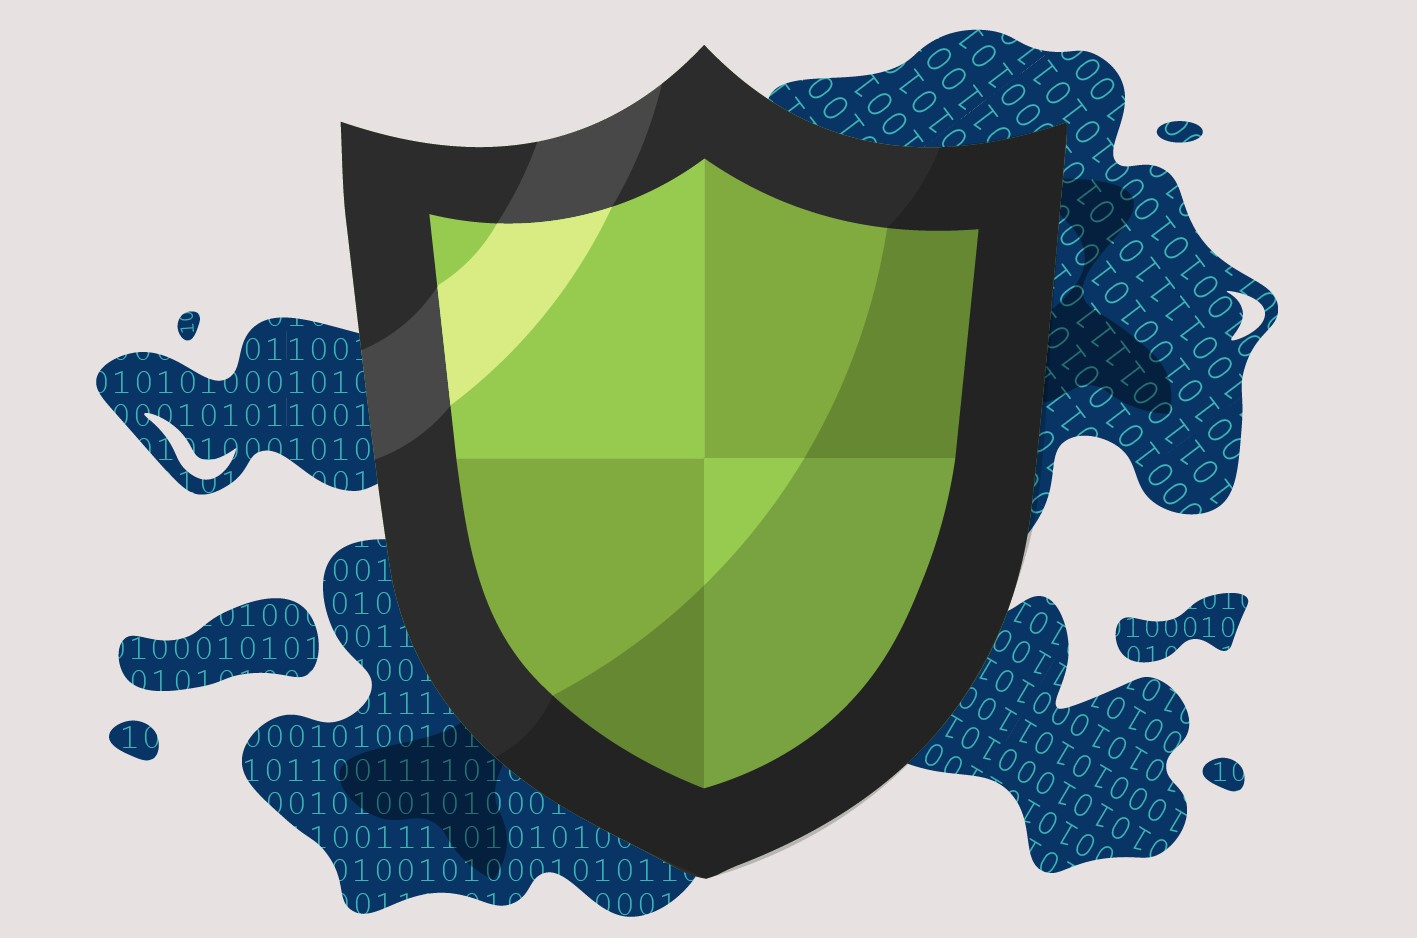 Data breaches: Better be informed than be a victim 2